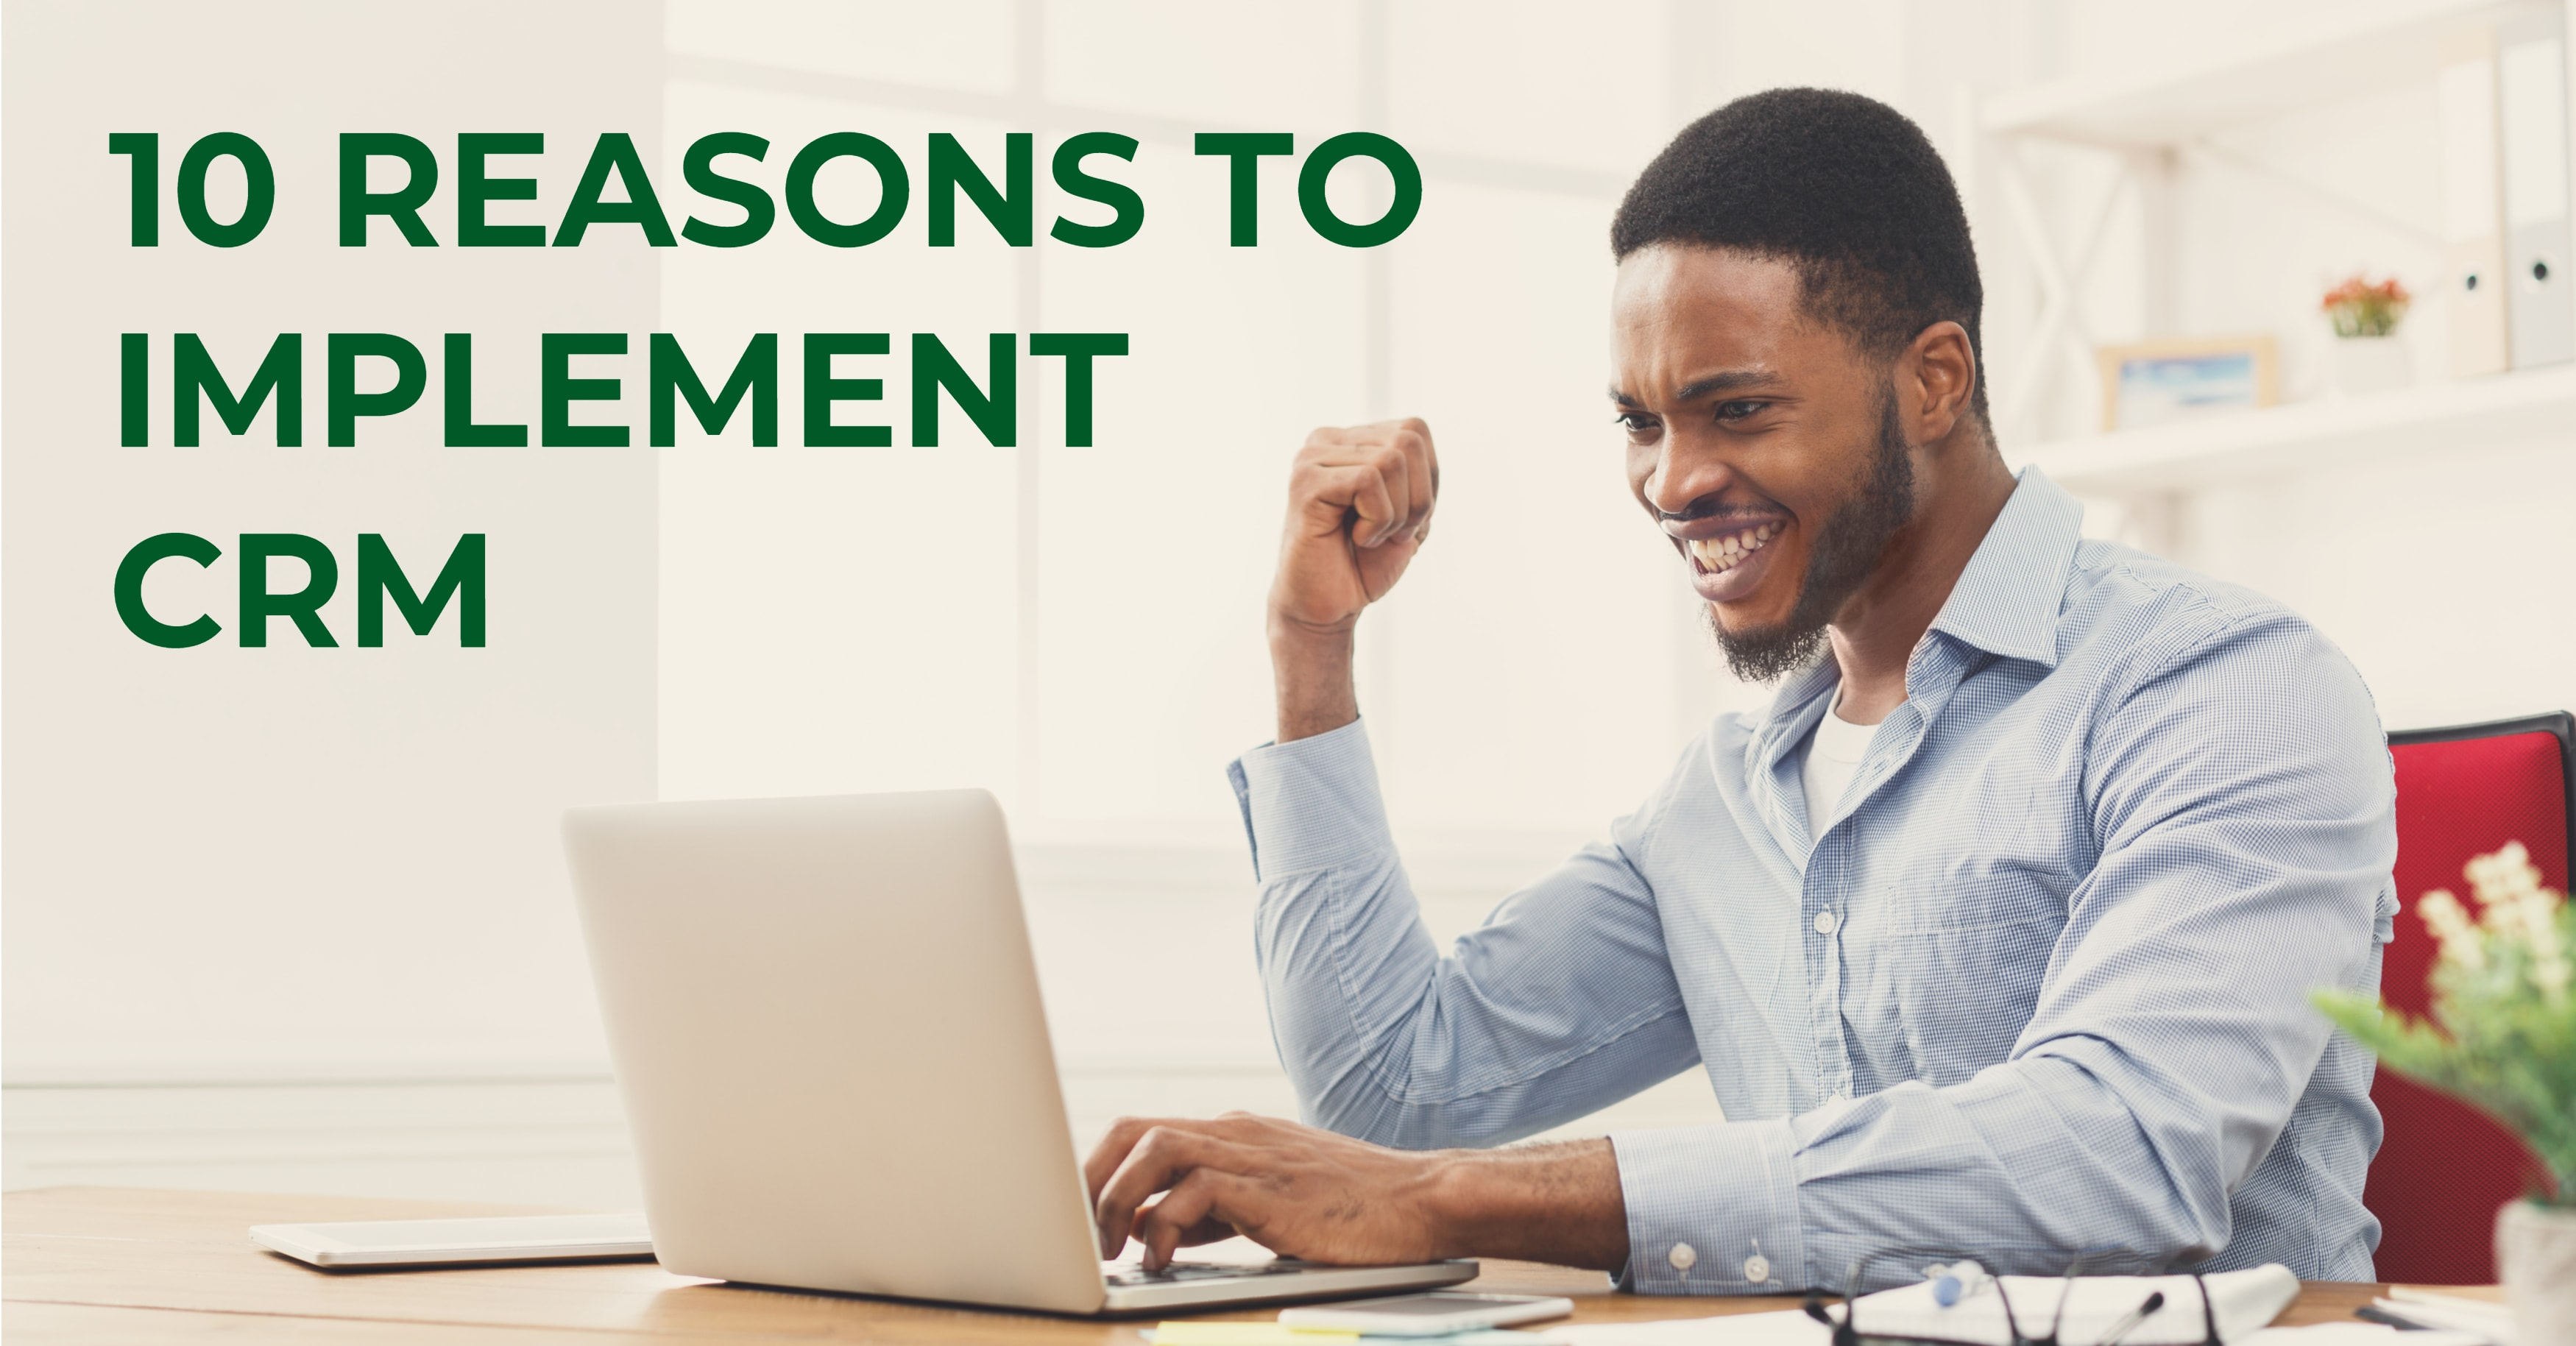 Reasons Implement CRM